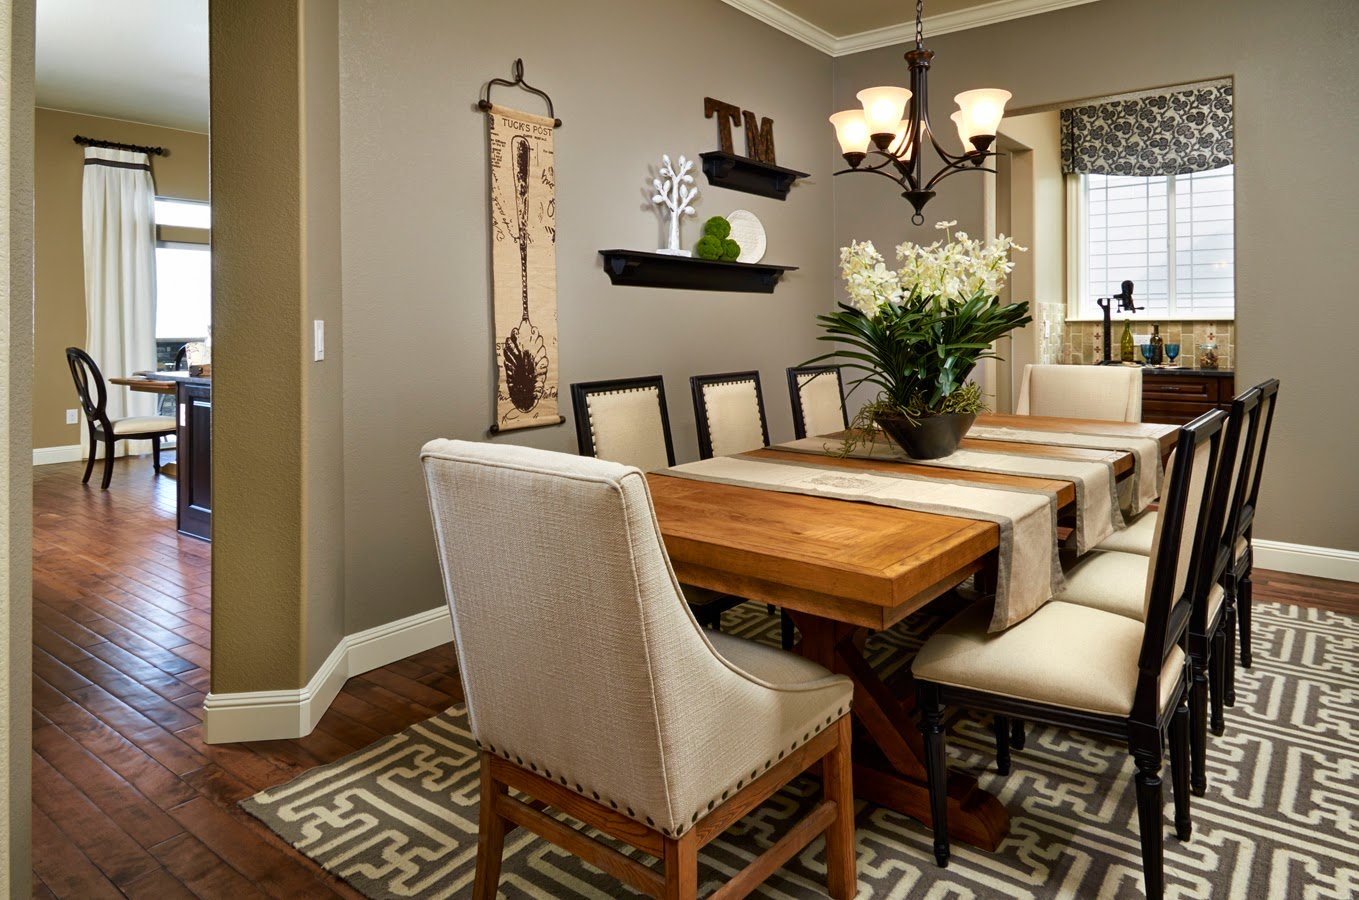 Dining room furniture arrangement ideas and tips kukun for Decorative items for dining room